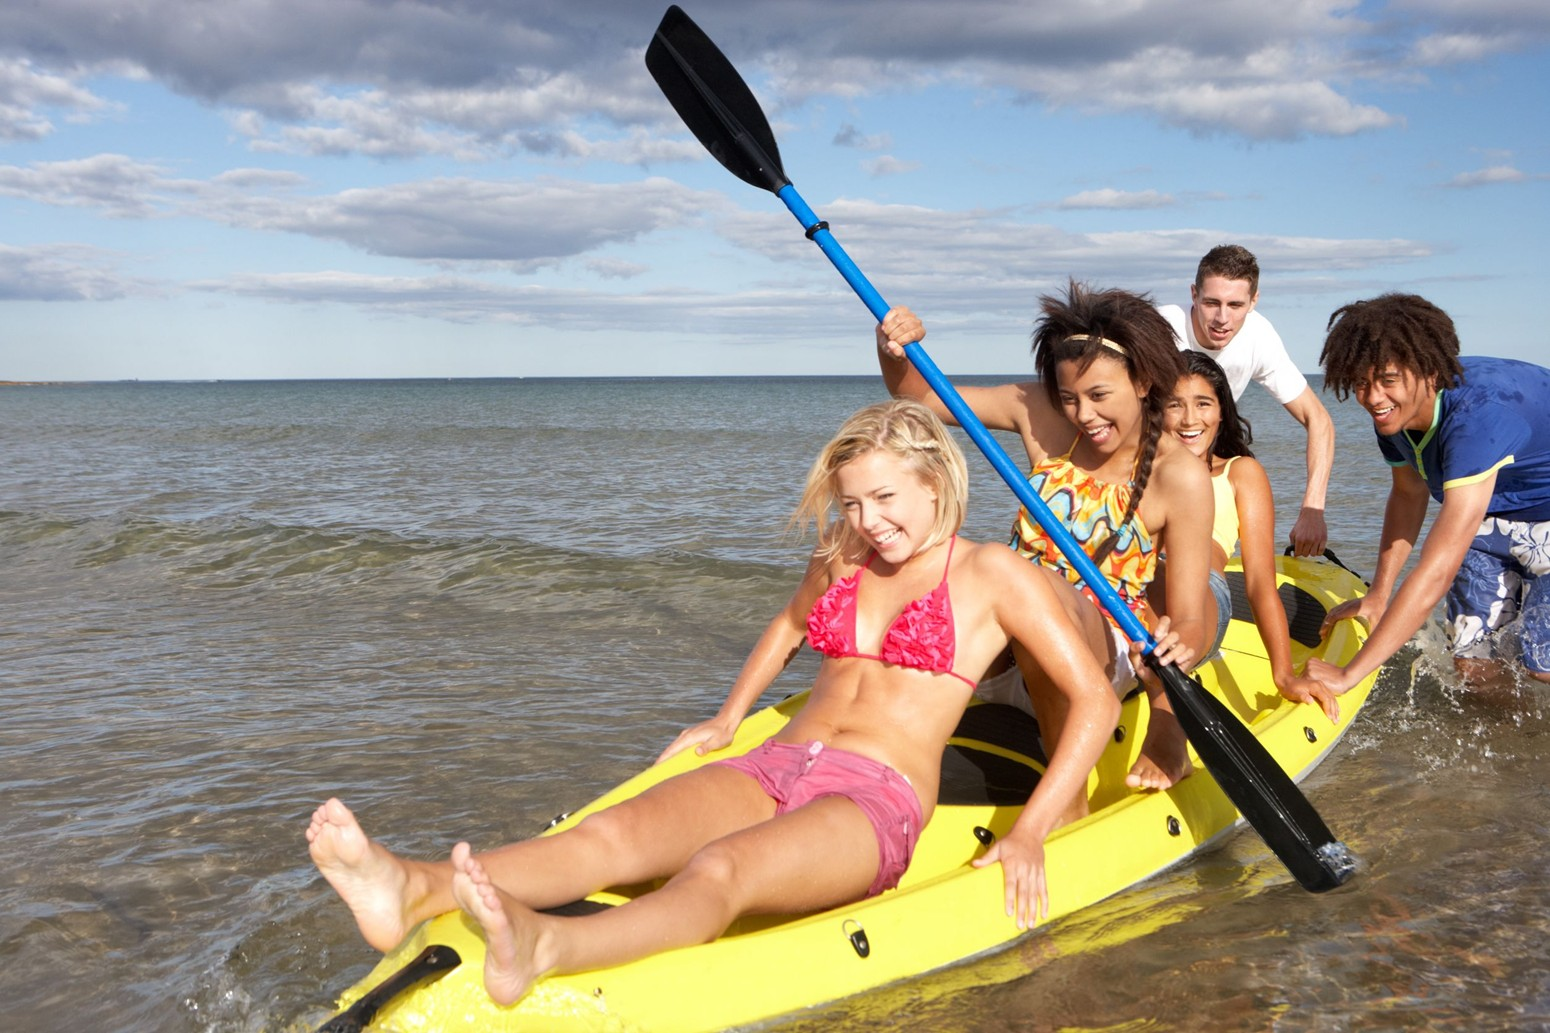 Pacific Islands Vacation Packages from Chicago's Favorite Travel Agency - Sunset Travel & Cruise, W Fullerton Ave 60614